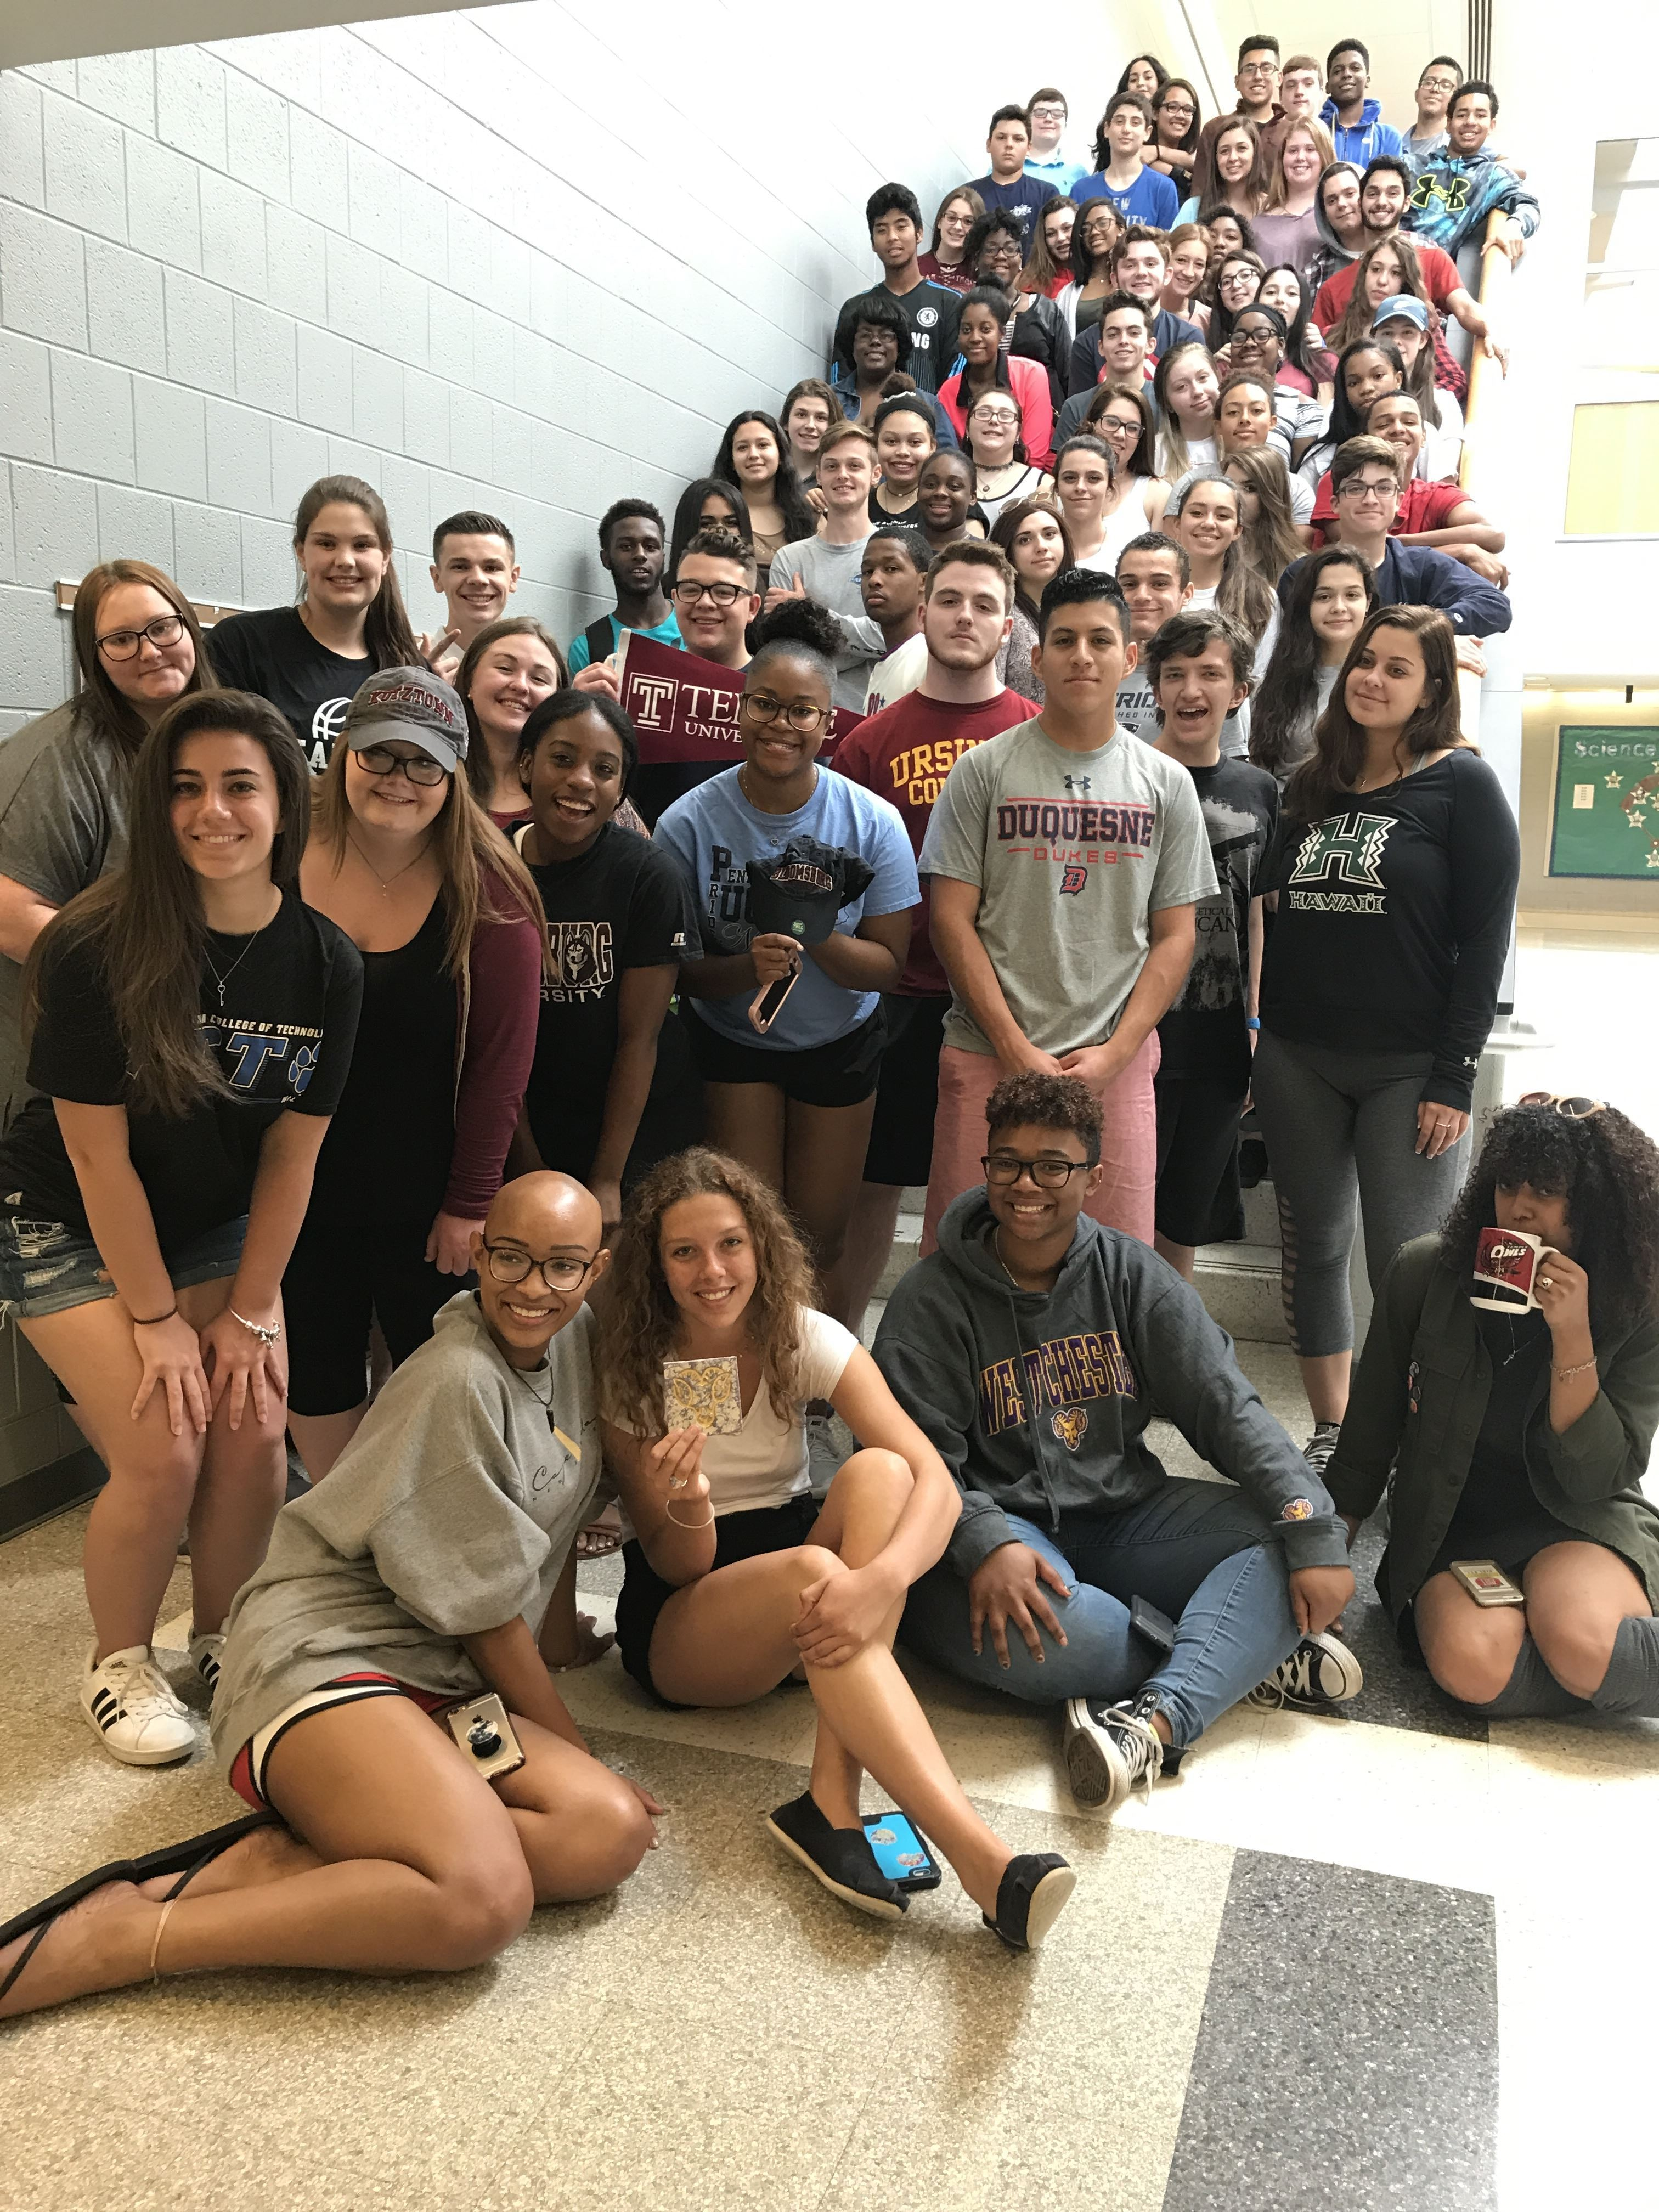 PWHS AVID students posed on the steps in the PWHS science wing